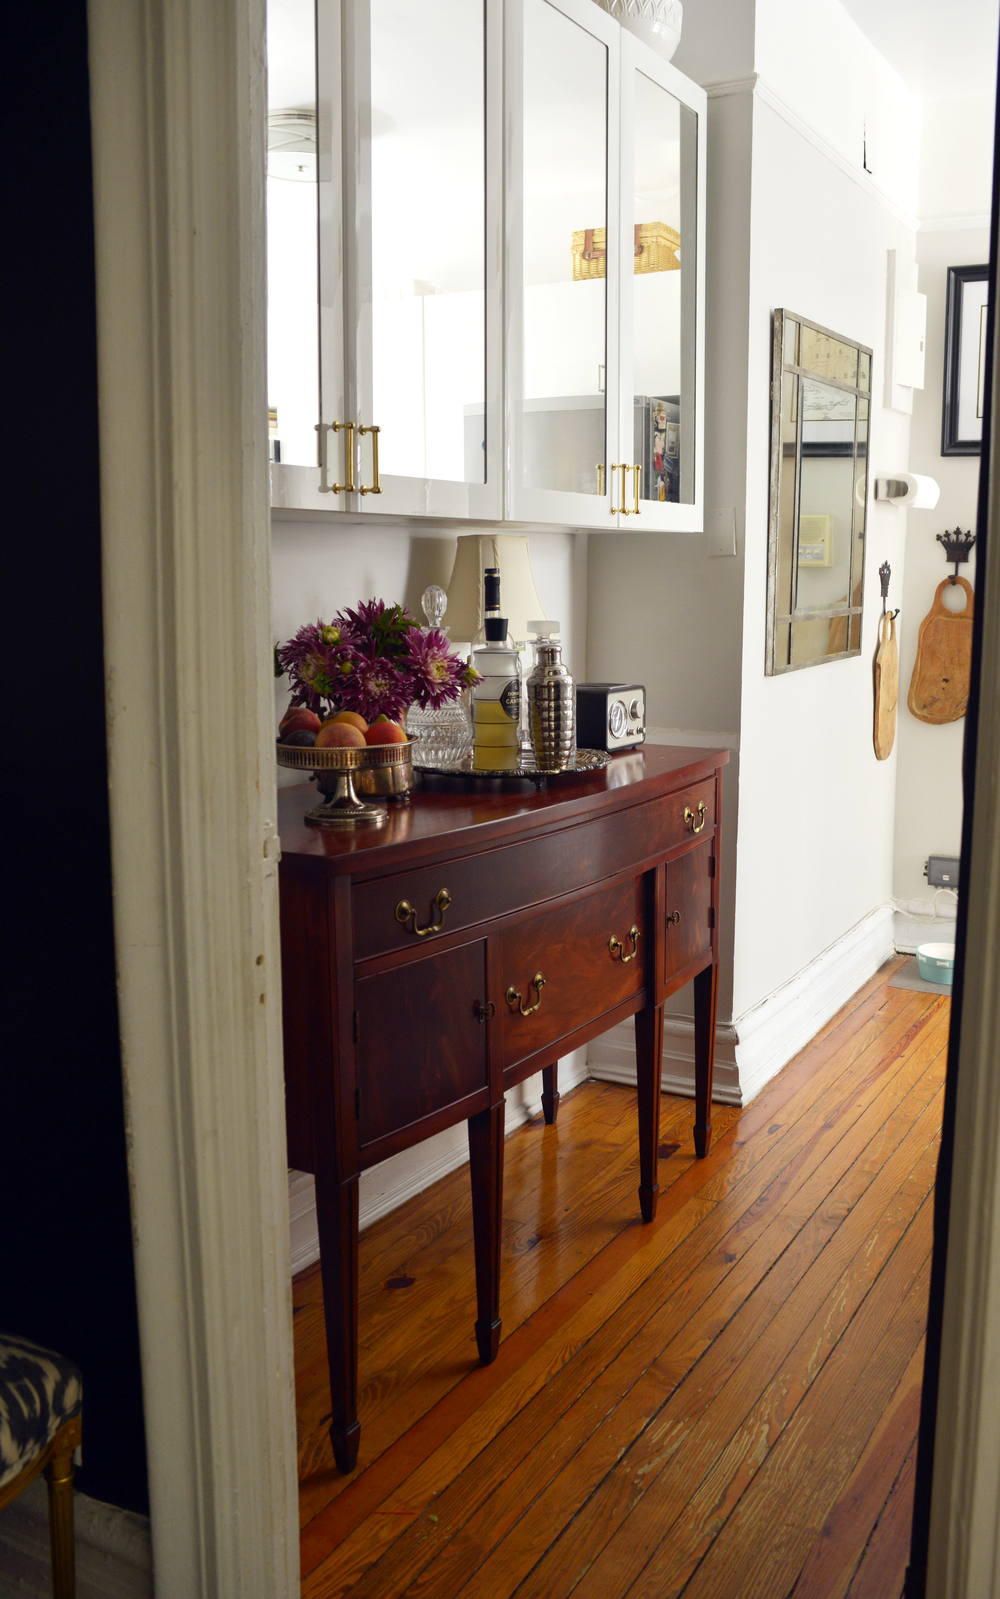 The new Sideboard installed |  Photograph by Lauren L Caron